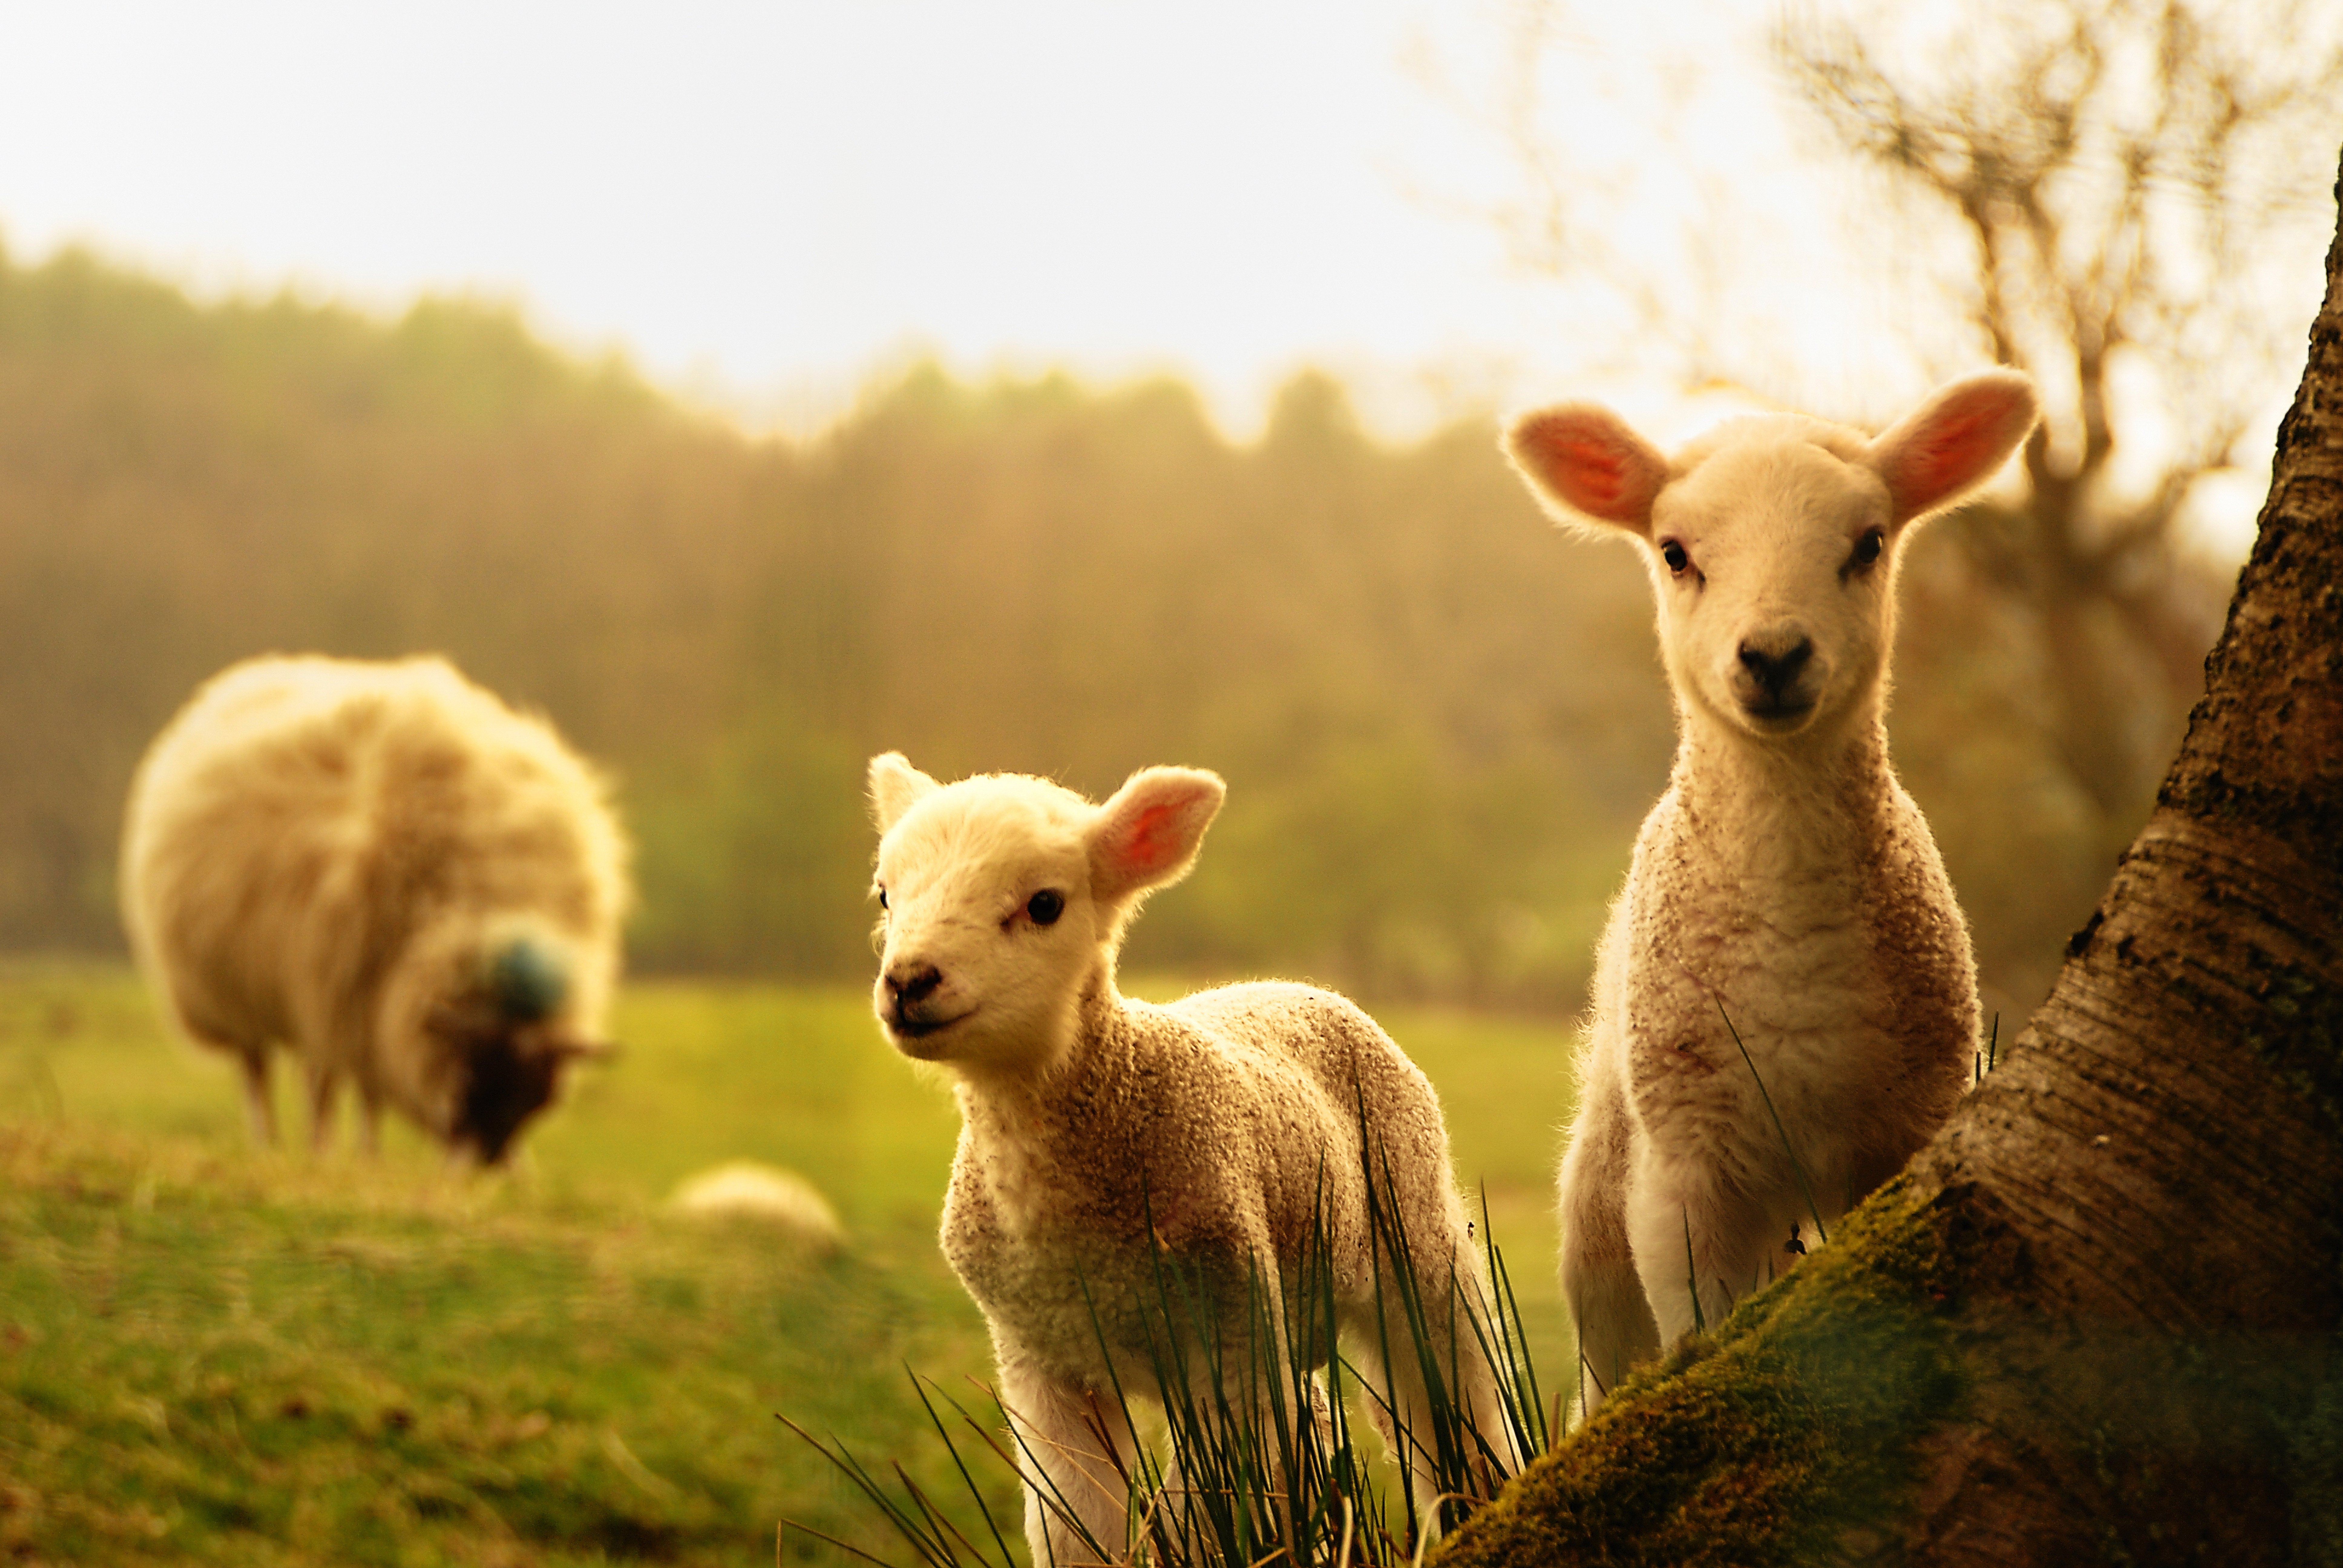 2048x1536 wallpapers wallpaperup young lambs sheep tree sheep baby wallpaper voltagebd Image collections